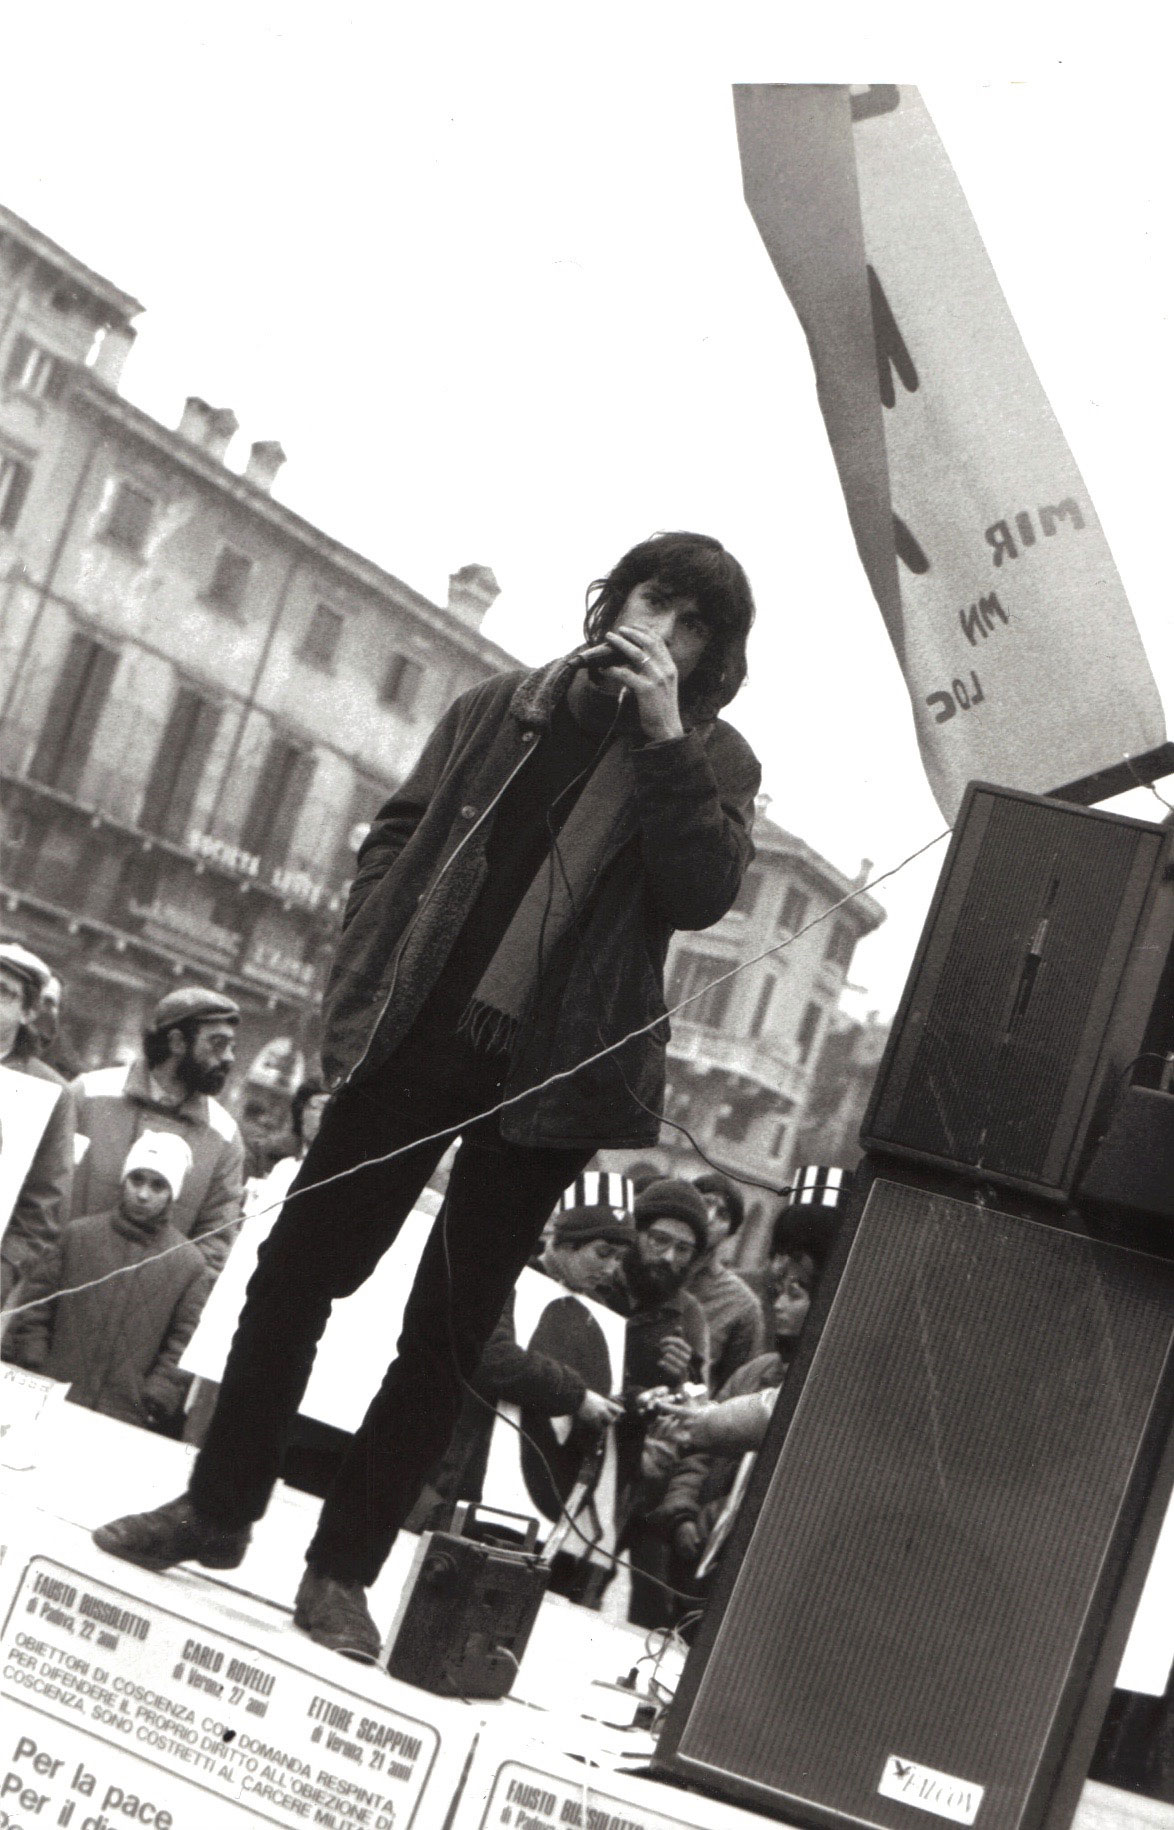 Carlo as a student activist in Bologna, Italy.